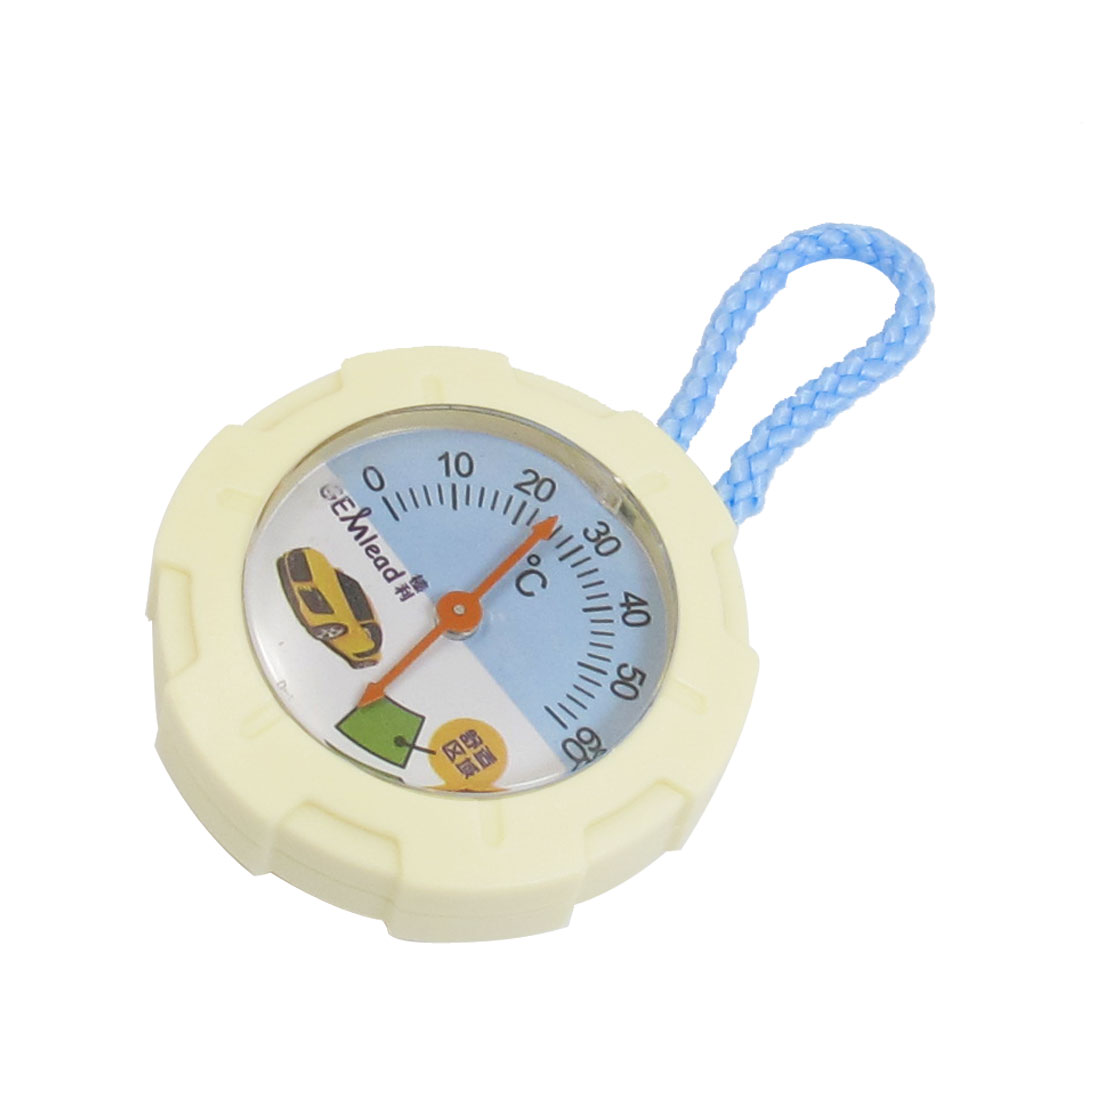 Beige Round Dial 0-60C Temperature Measure Thermometer Tool w Blue Strap